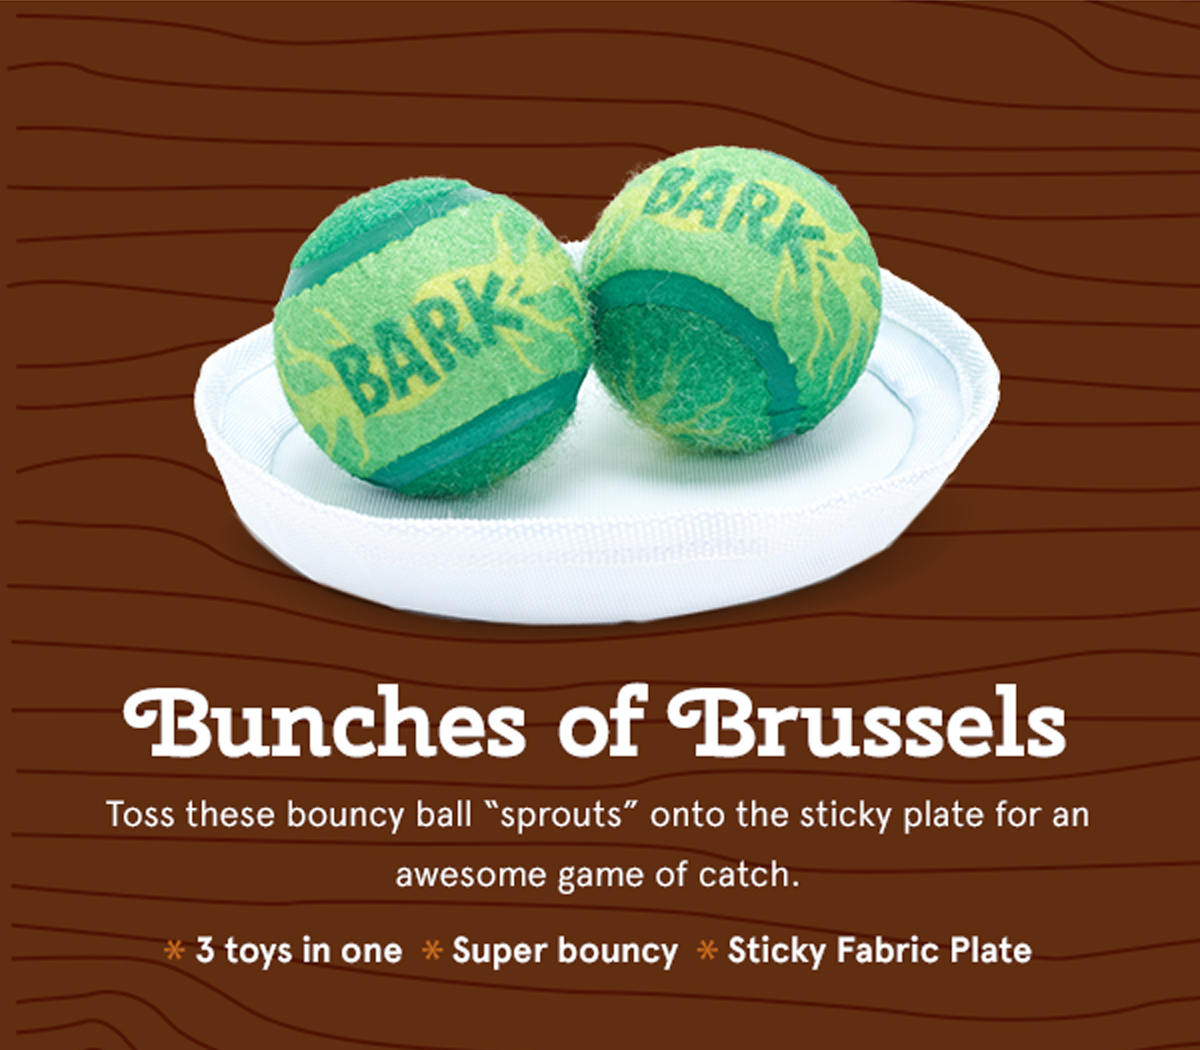 Bunches of Brussels